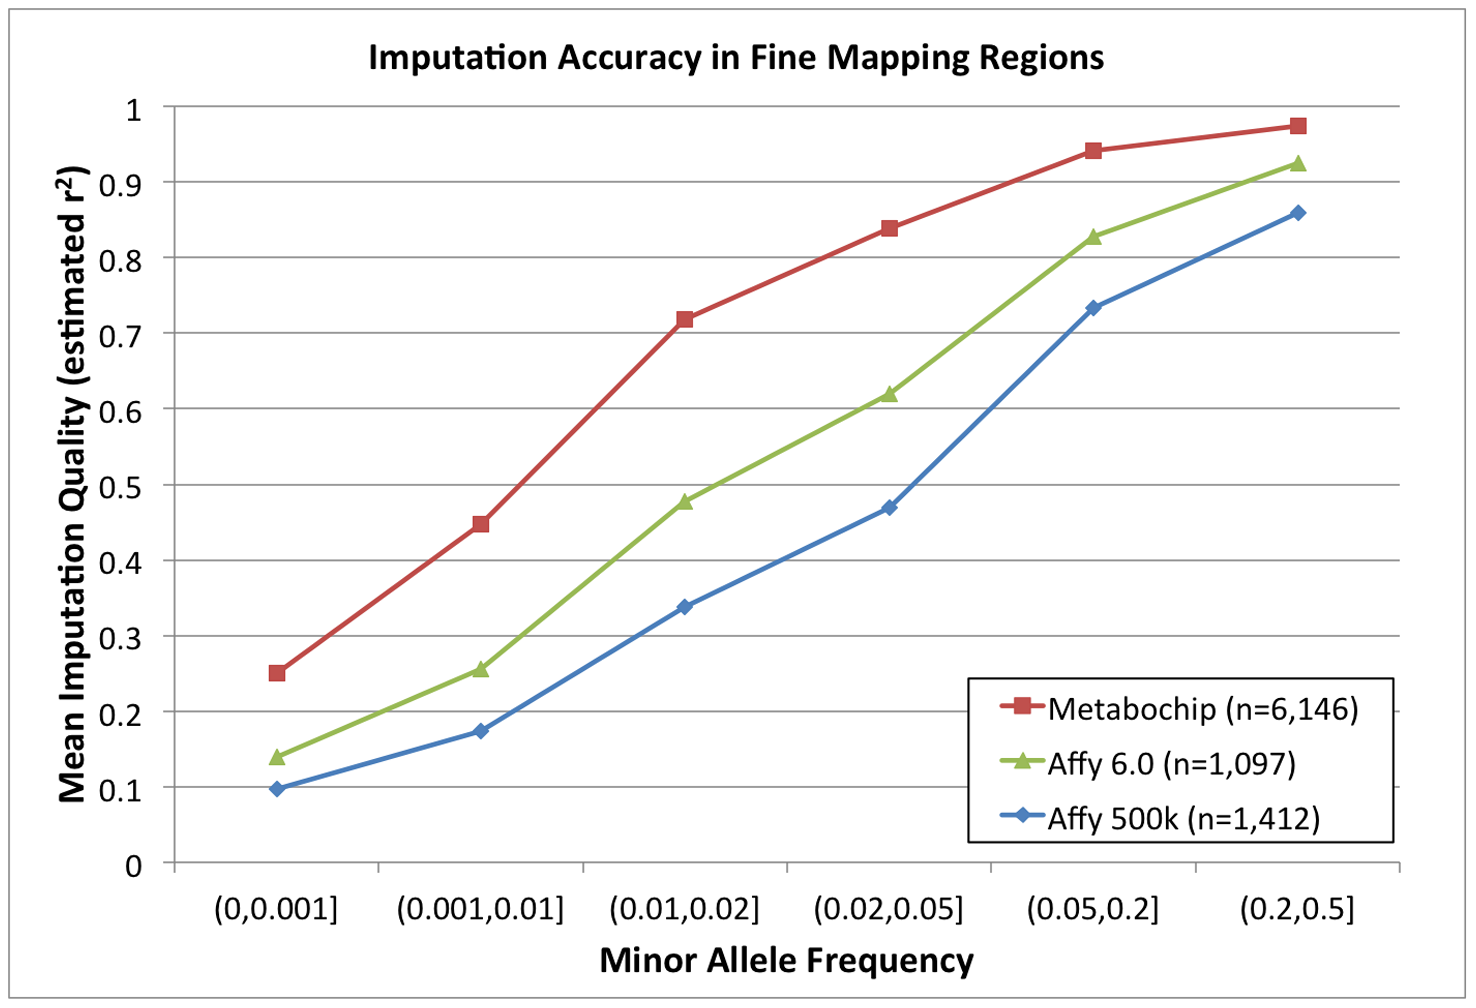 Imputation accuracy (estimated r<sup>2</sup>) in fine mapping regions.